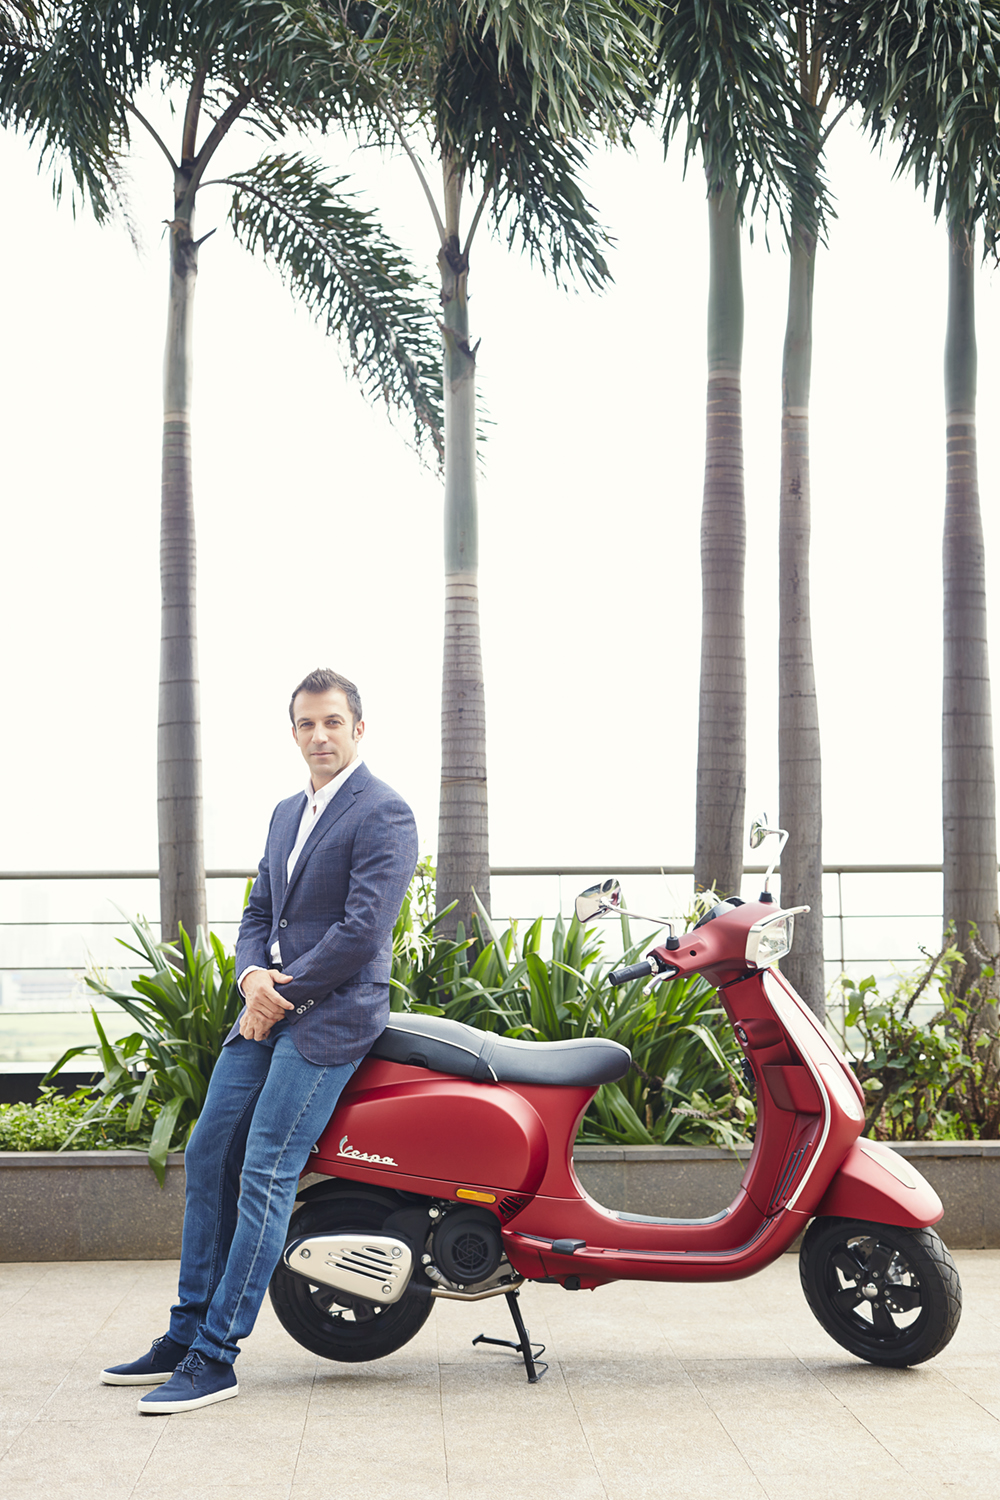 KC_Vespa Oct 2015 153 copy.jpg